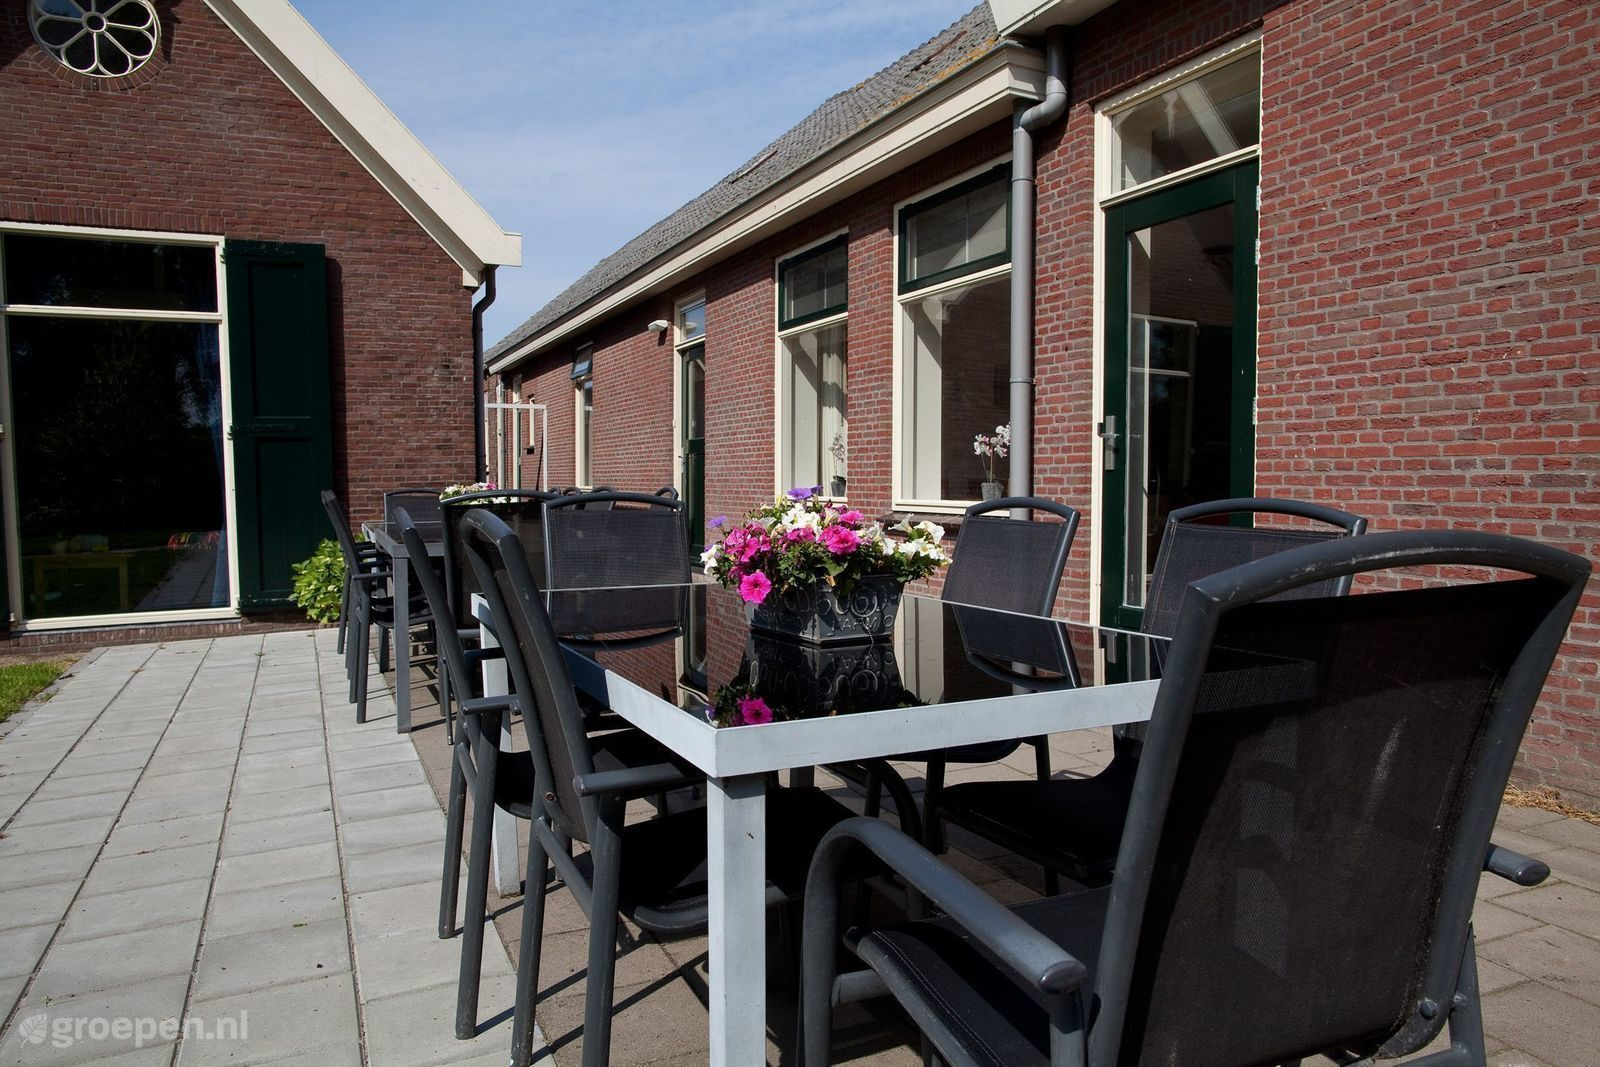 Group accommodation Koudekerk aan den Rijn